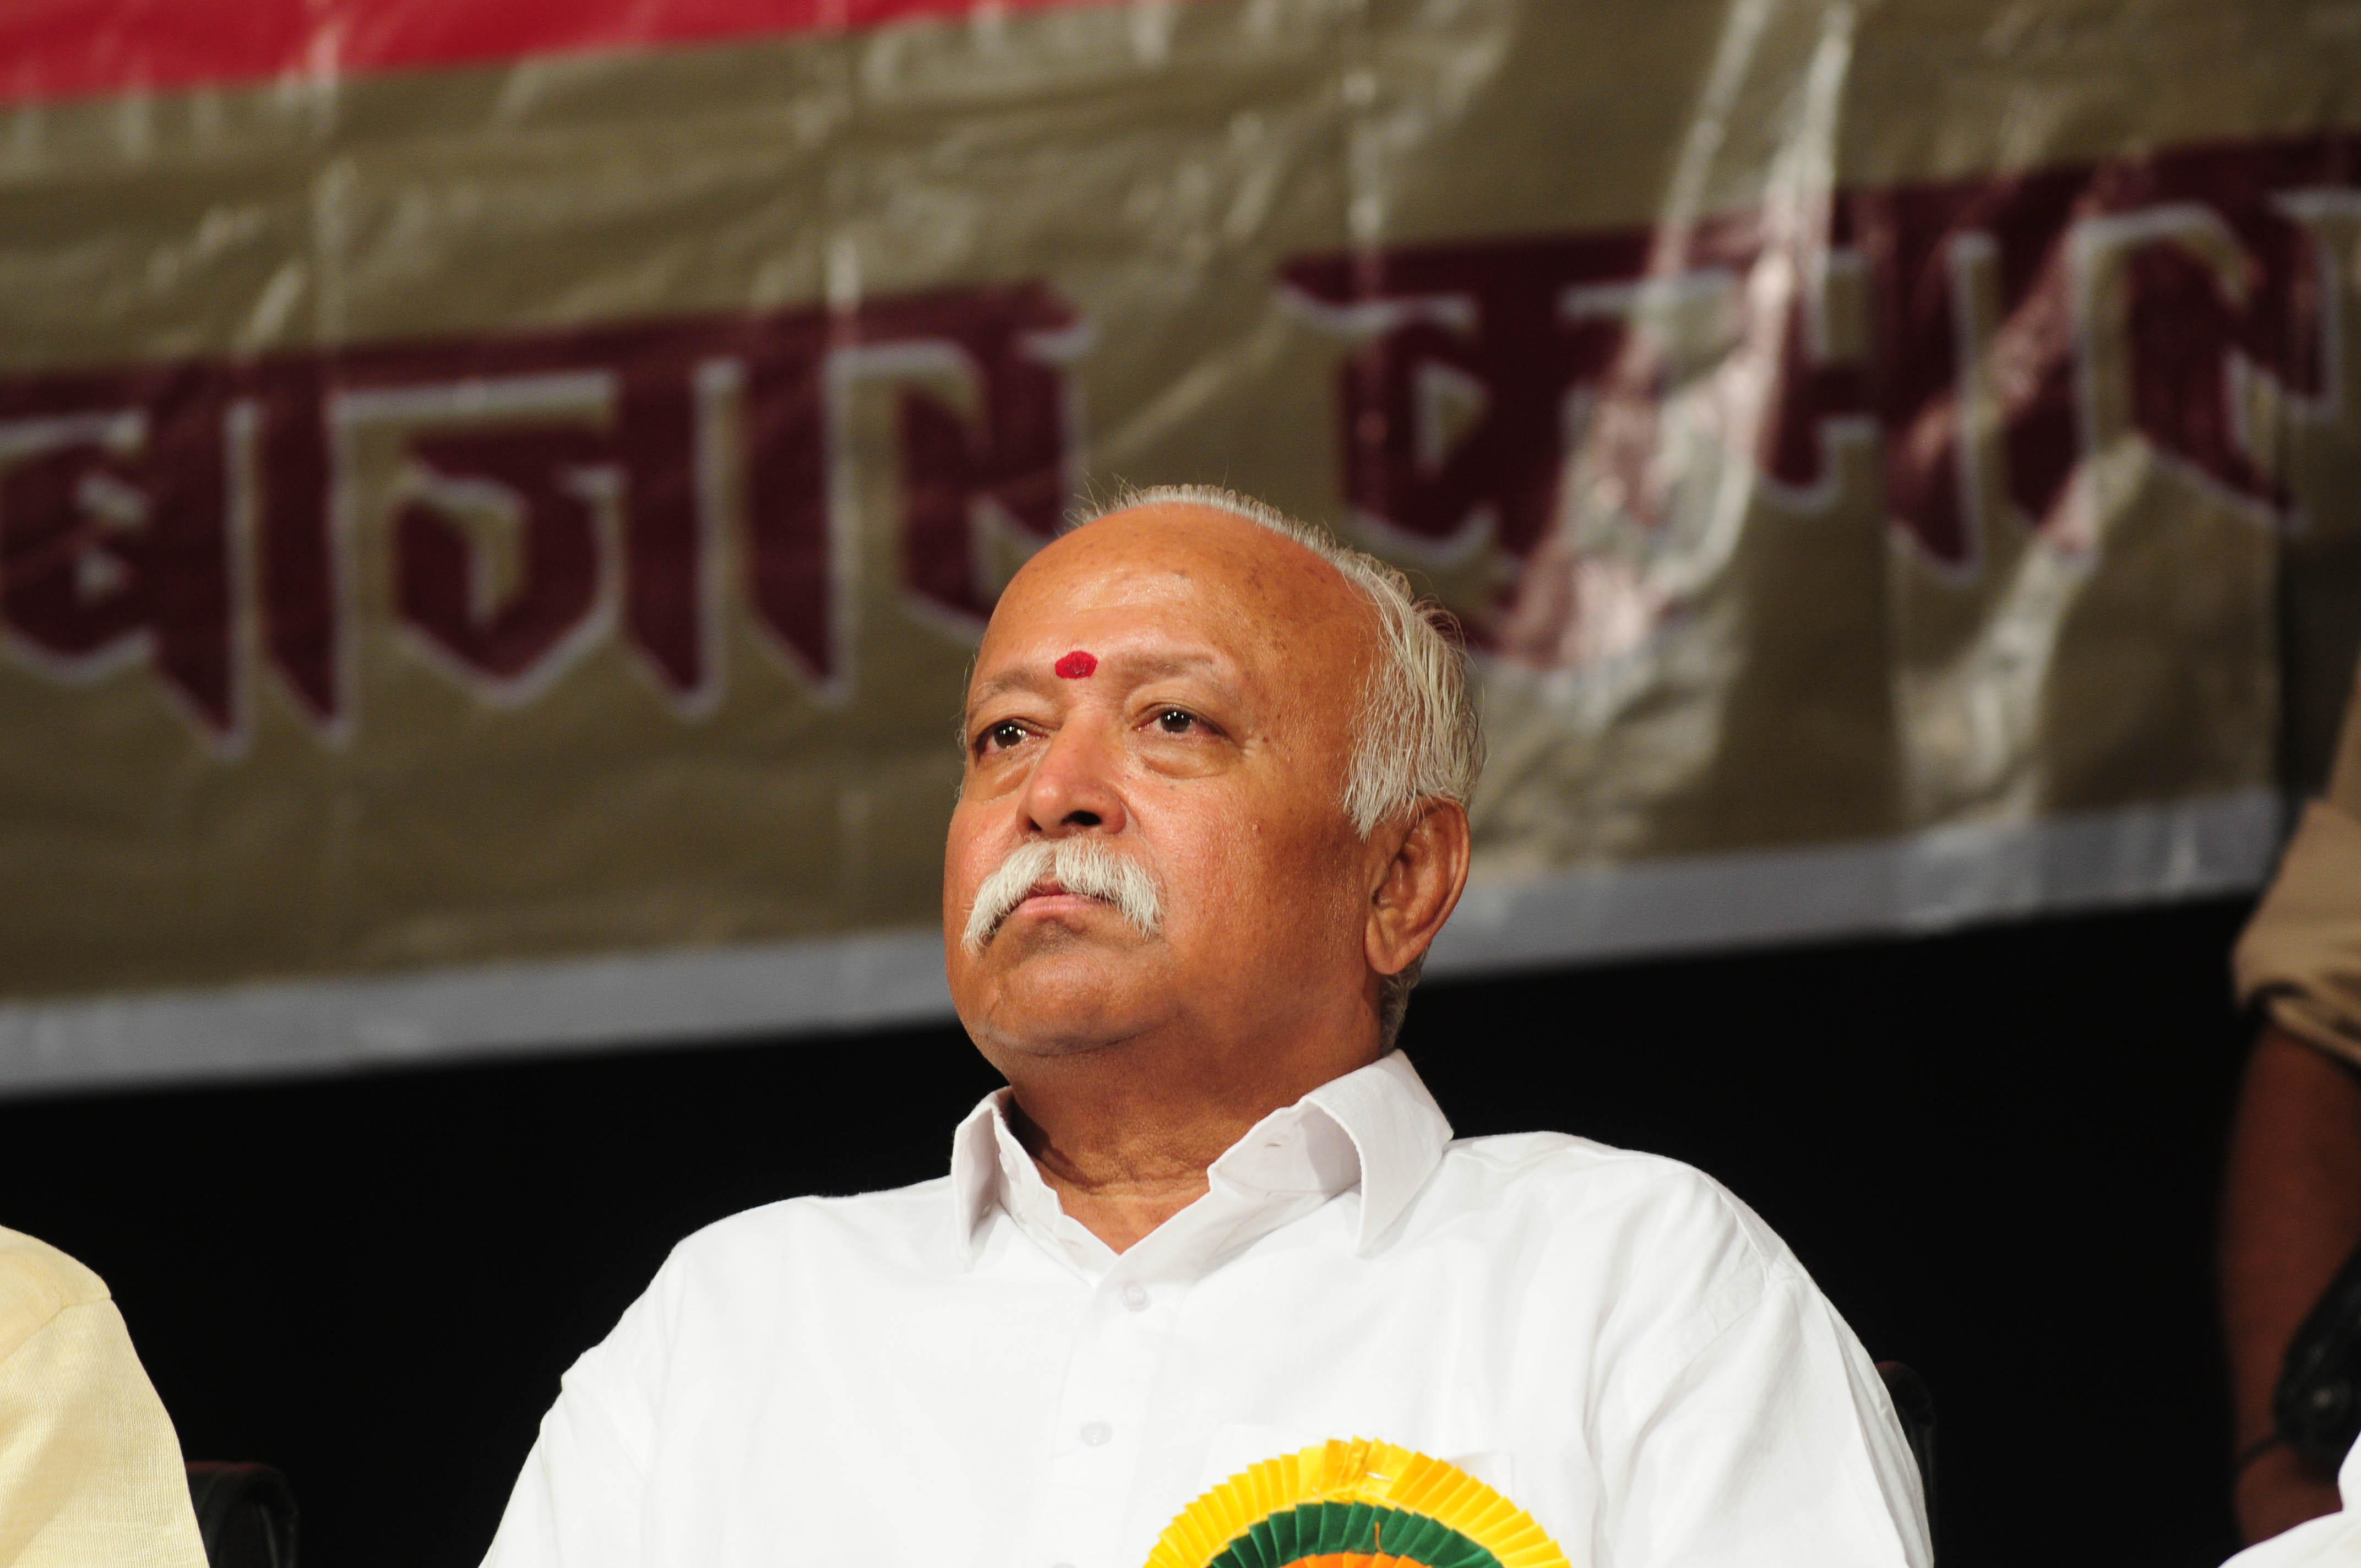 RSS chief Mohan Bhagwat at a gathering in Kolkata on April 1, 2015